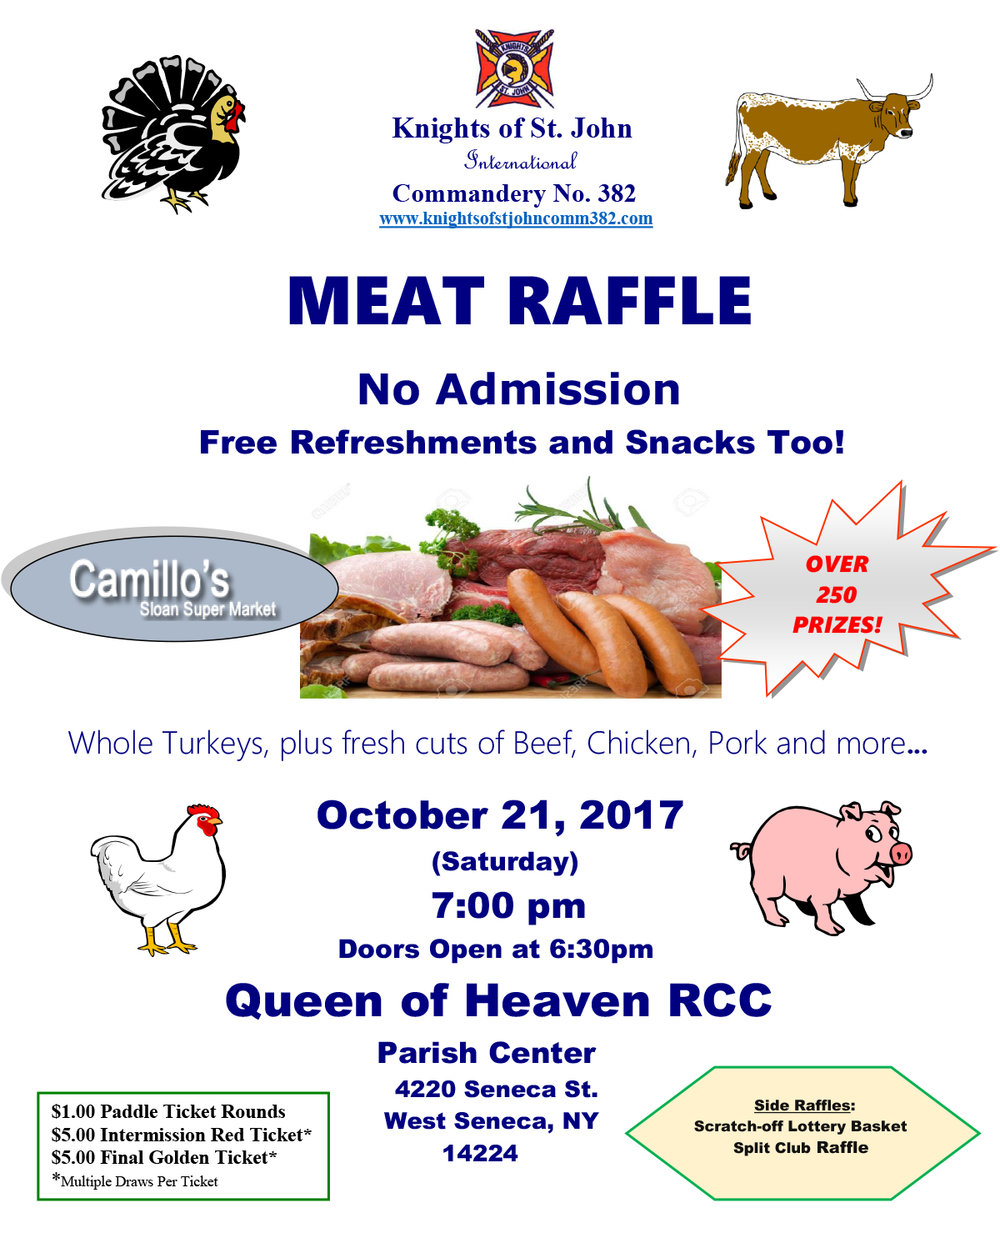 2017 Meat Raffle Flyer with Camillo's.jpg